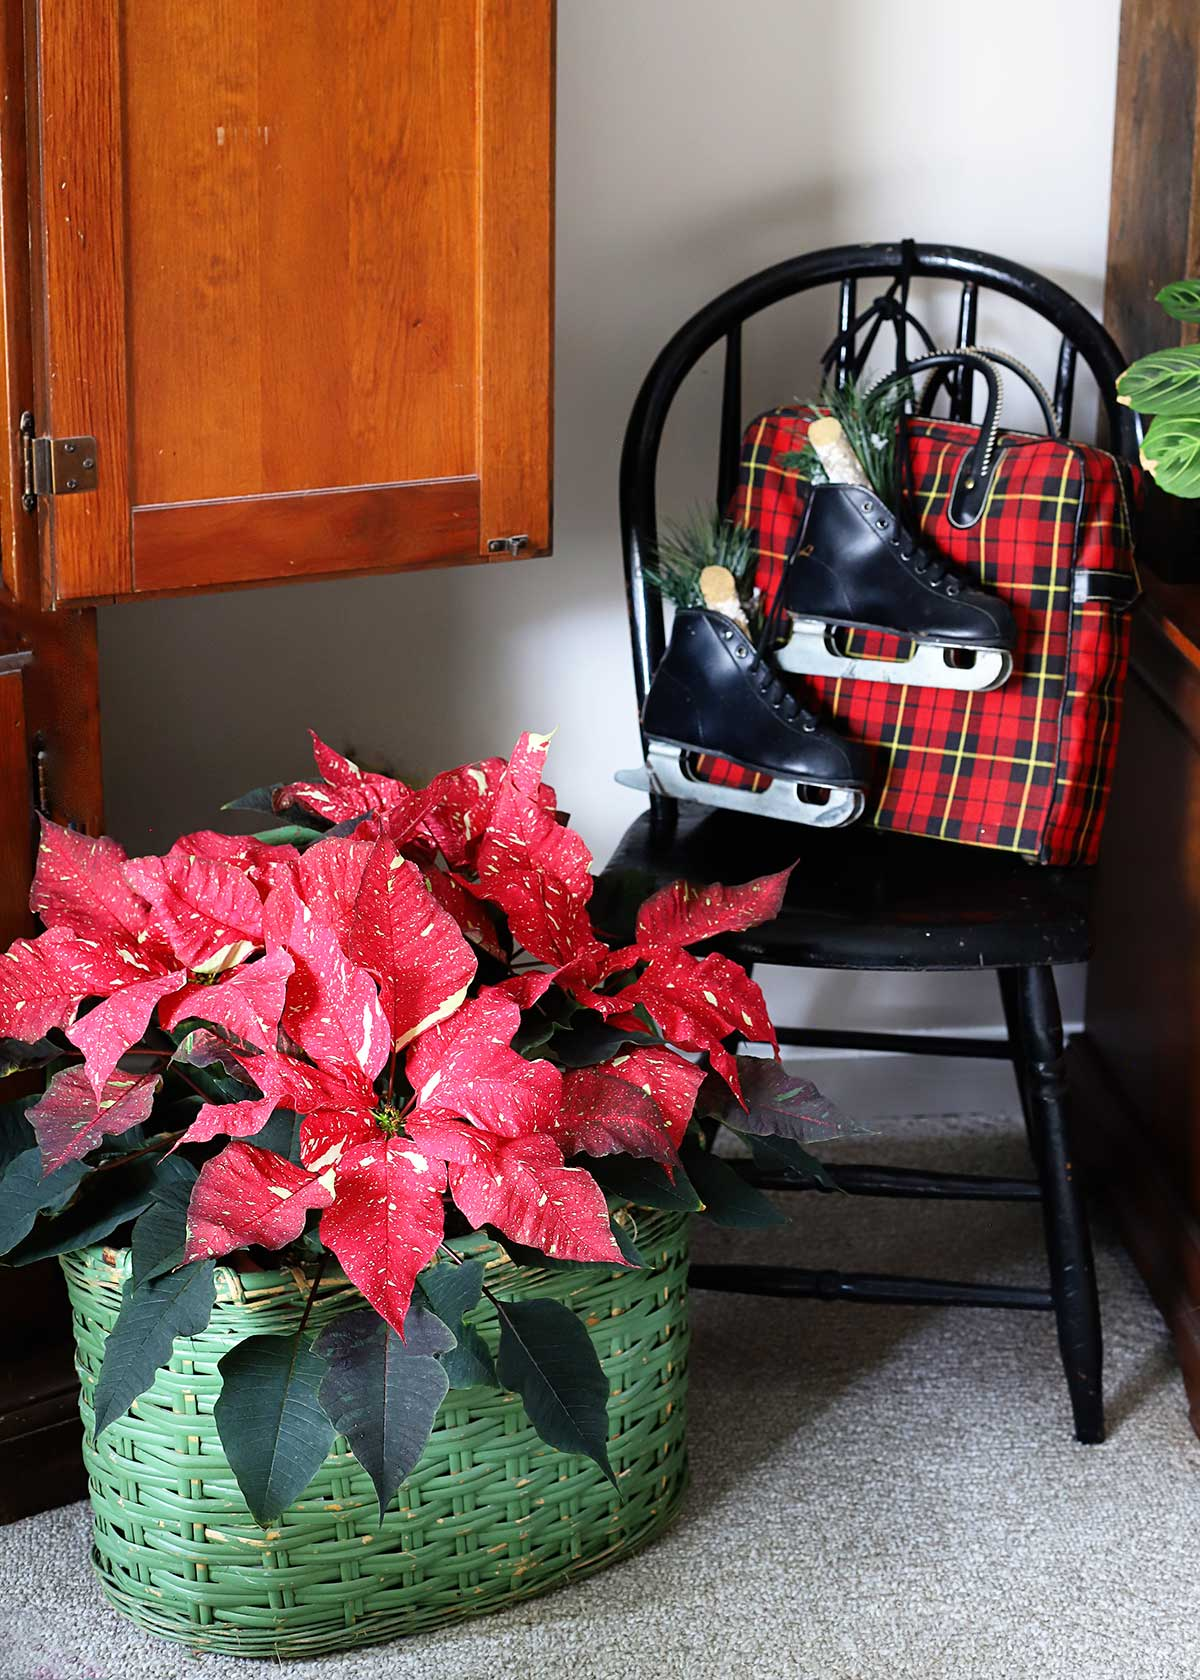 red poinsettia in a green basket and ice skates hanging on a chair